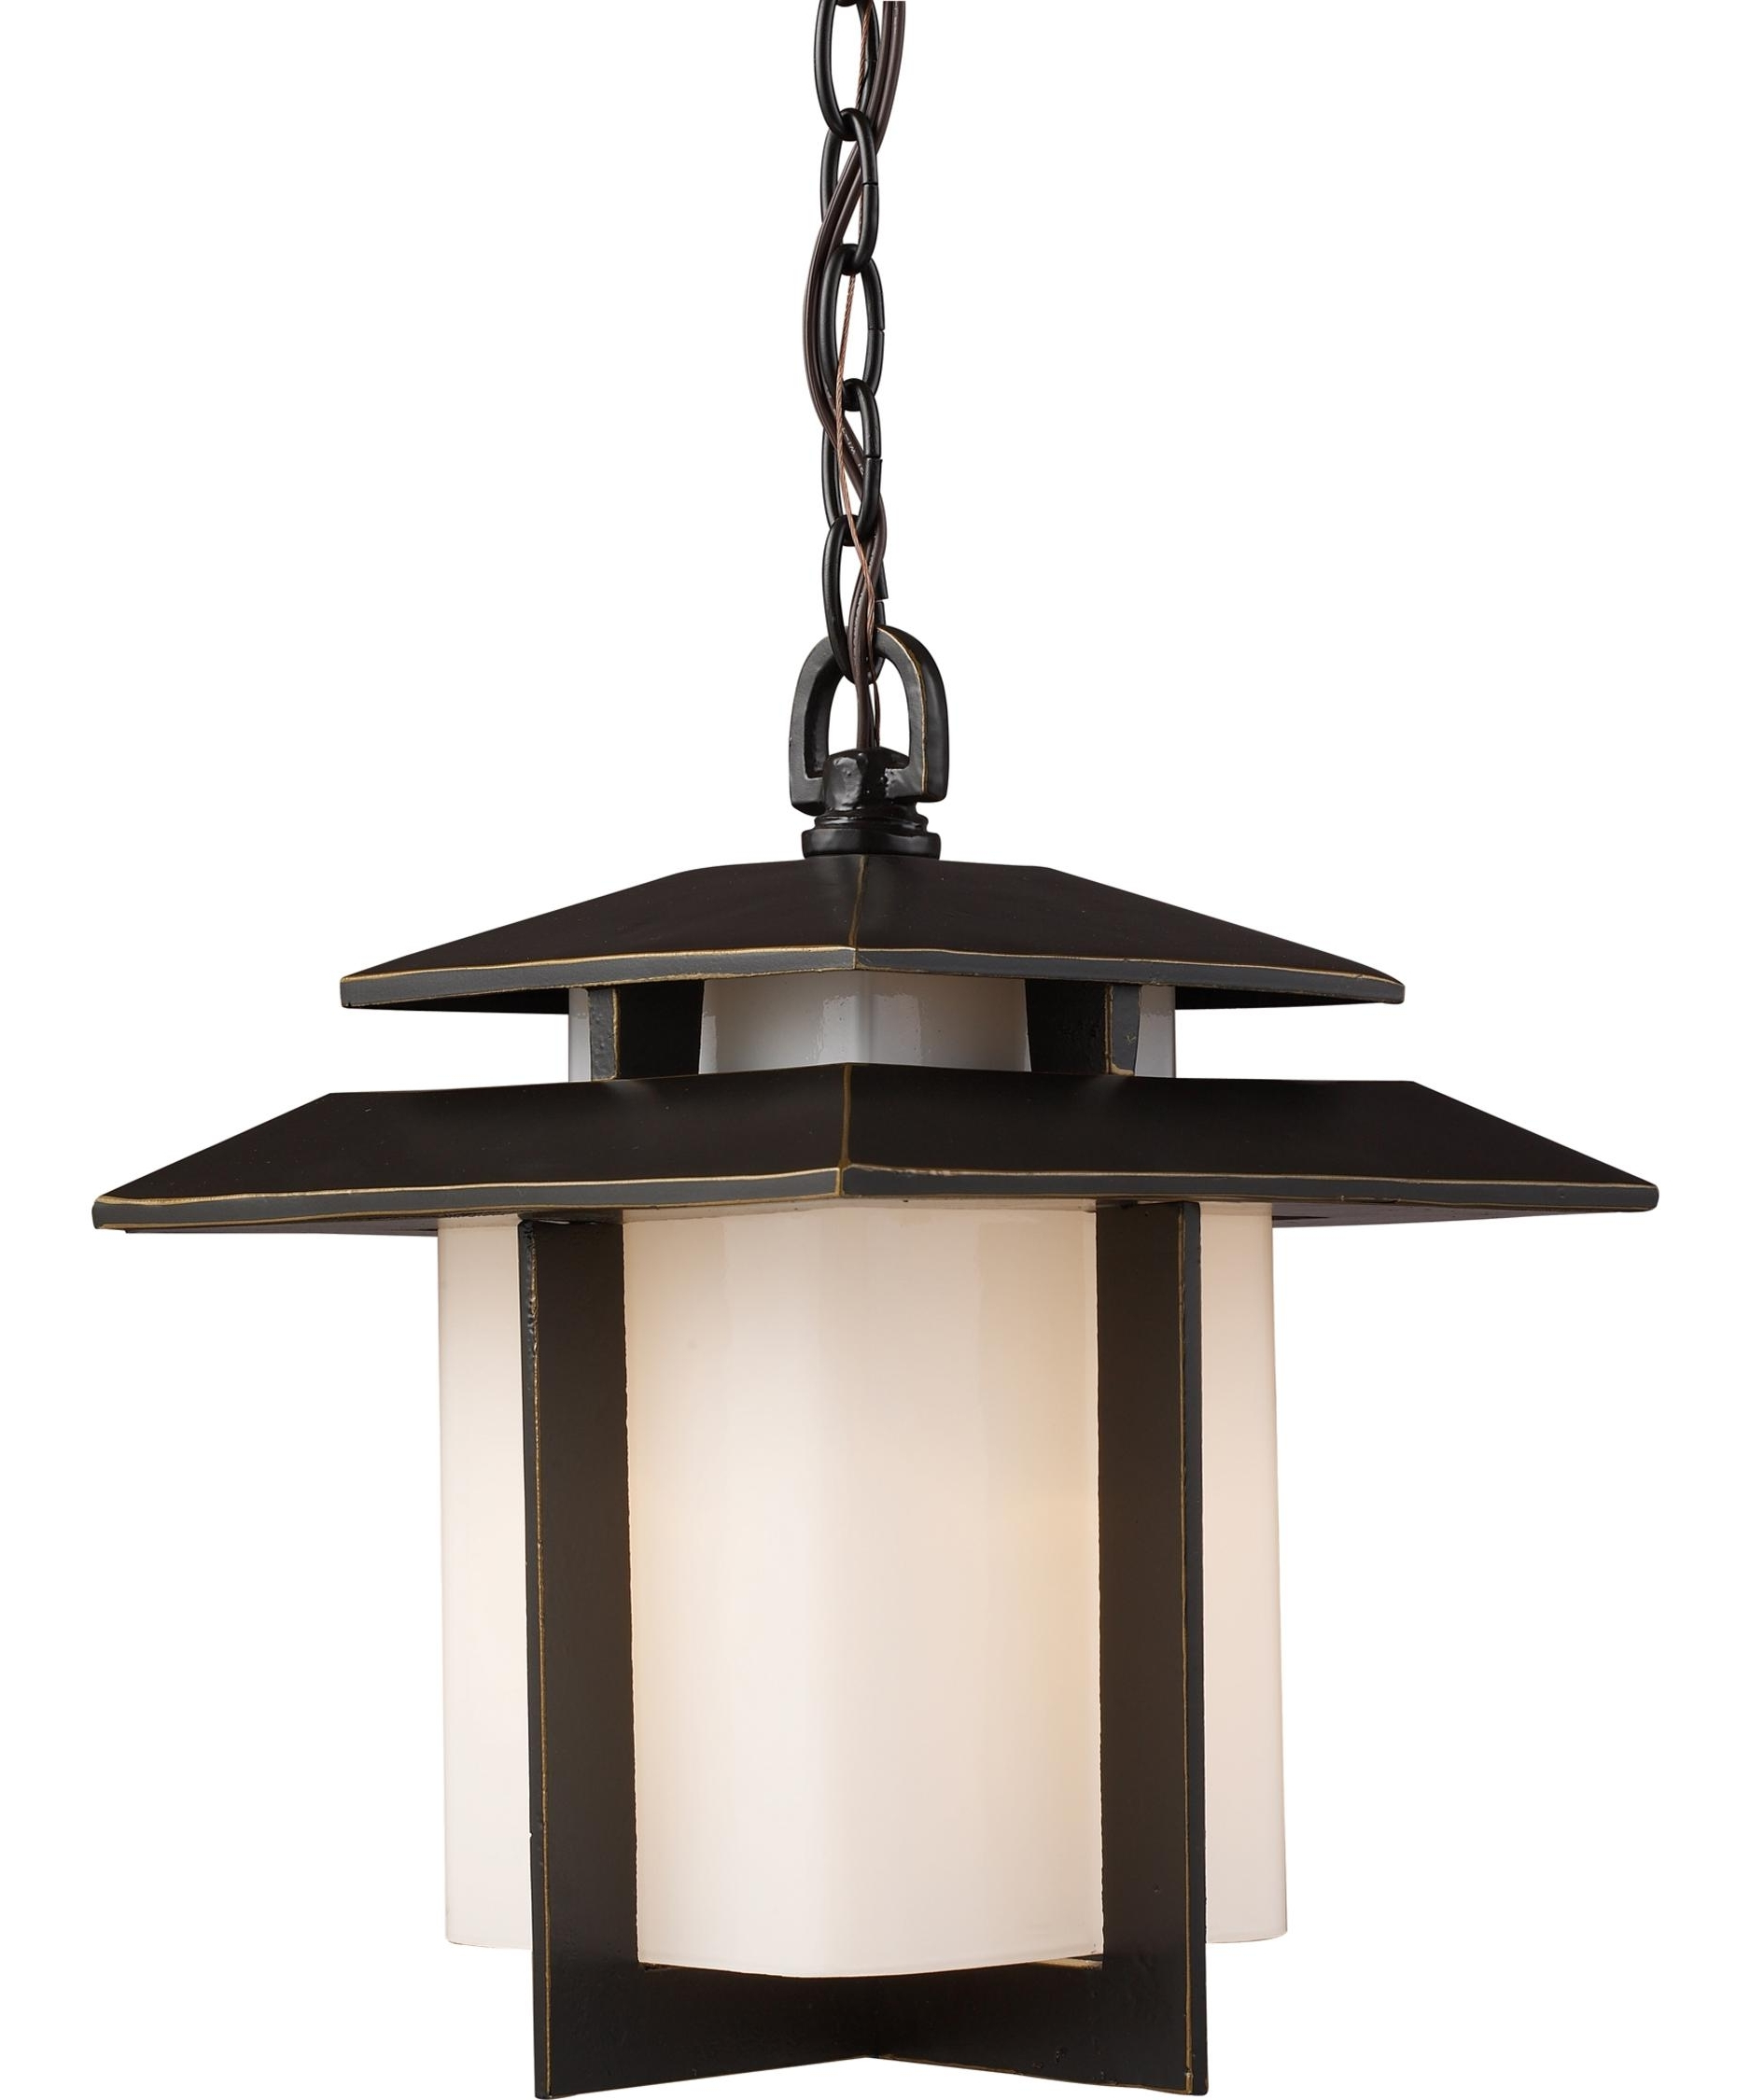 Outdoor Hanging Carriage Lights With Regard To Newest Light : Exterior Lighting Ceiling Light Fixture Outdoor Led Carriage (View 11 of 20)